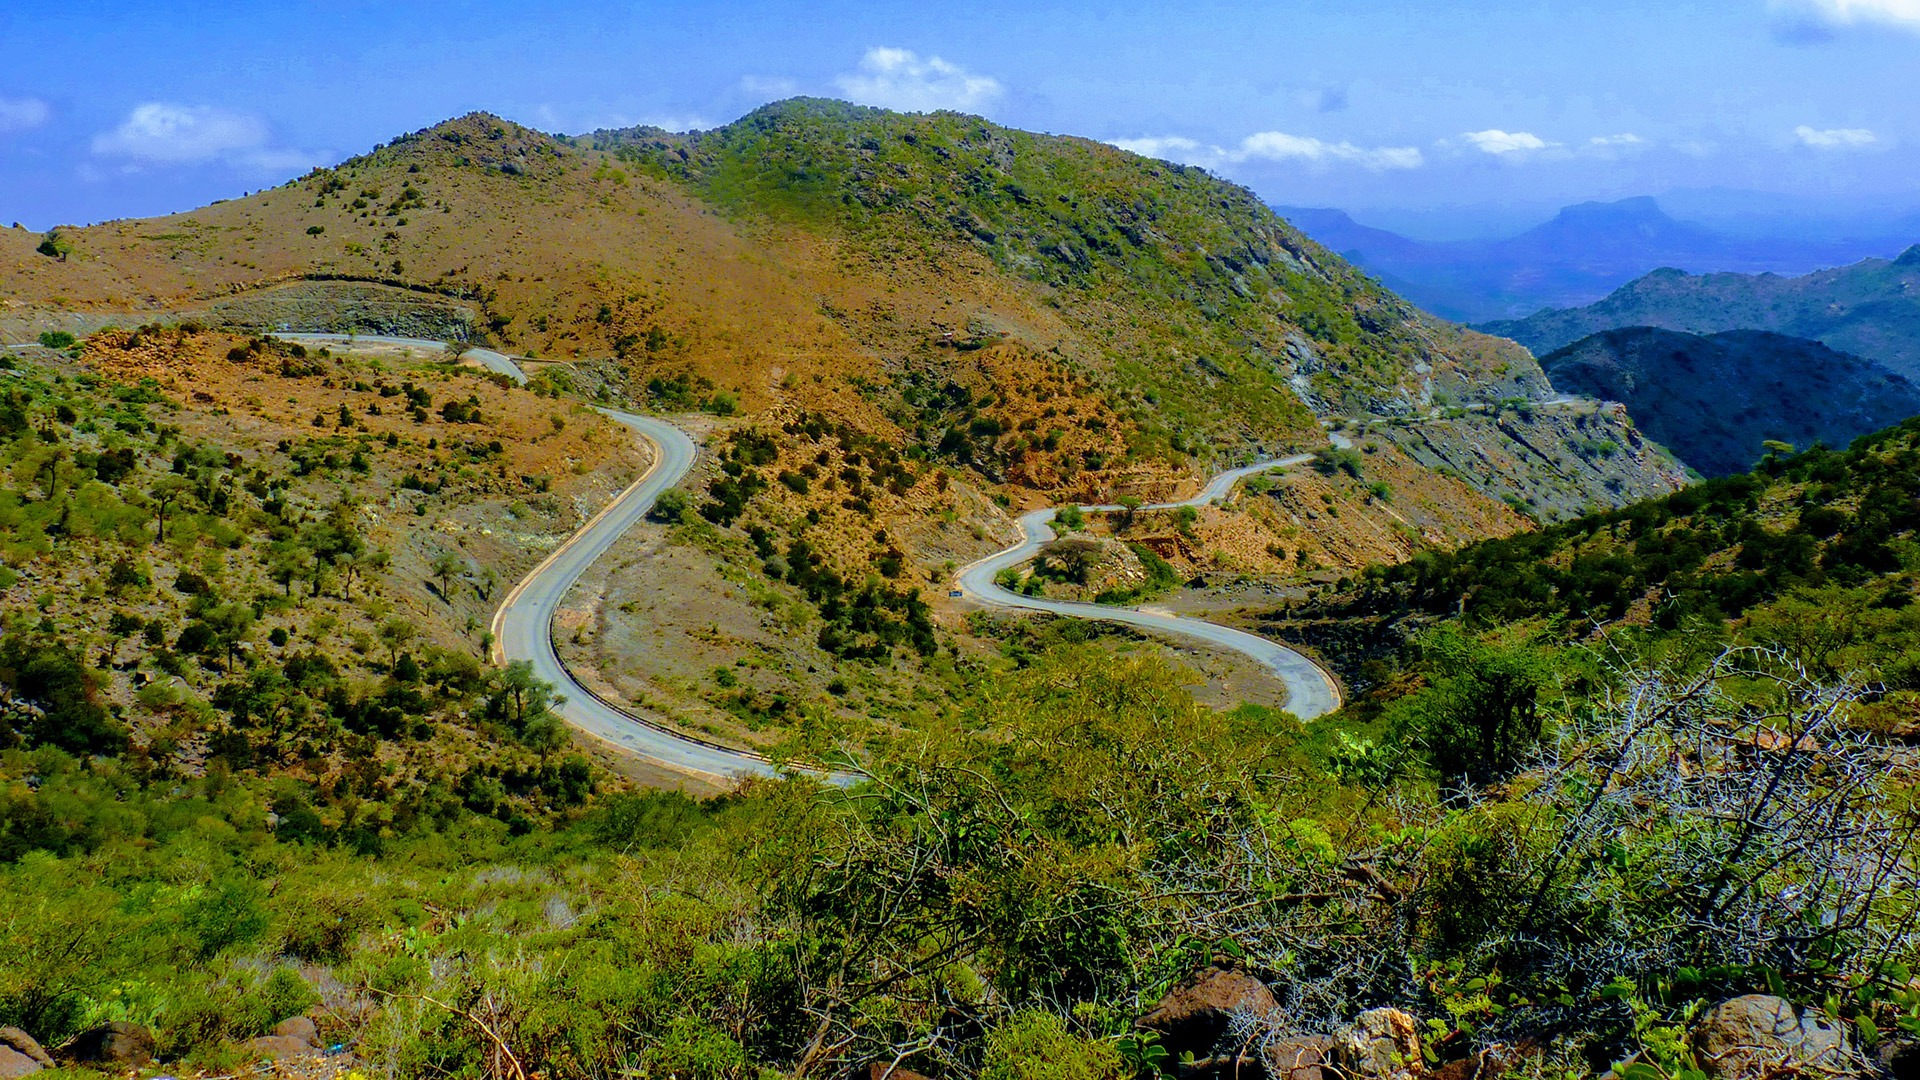 A winding road in the highlands of Somaliland